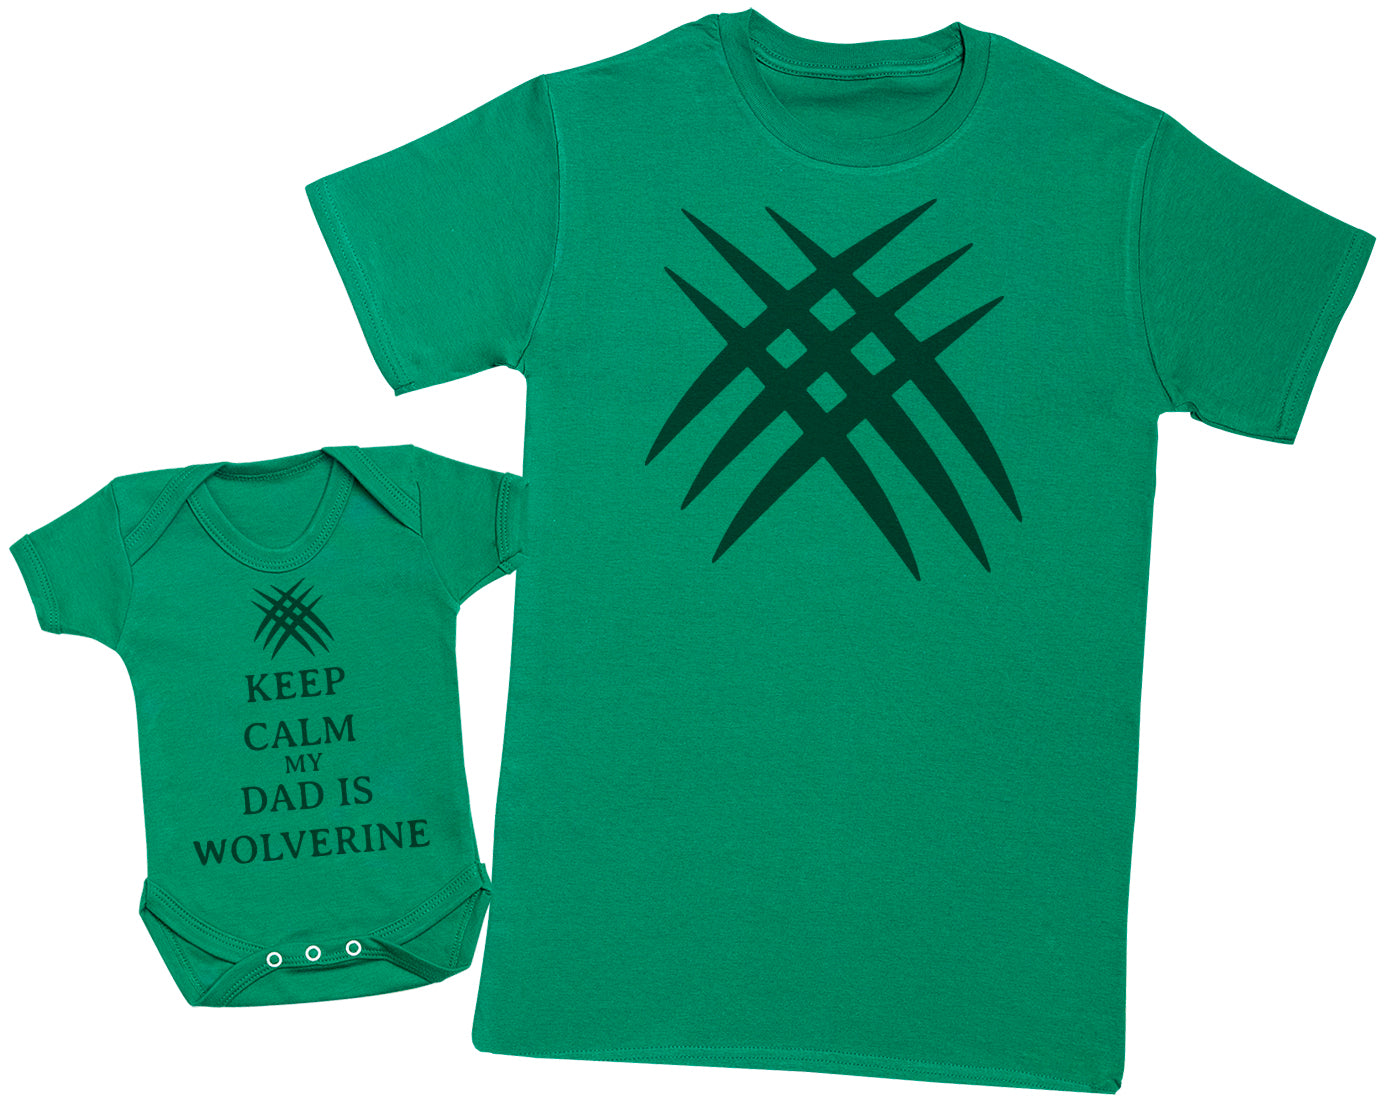 Keep Calm My Dad Is Wolverine Matching Father Baby Gift Set - Mens T Shirt & Baby Bodysuit